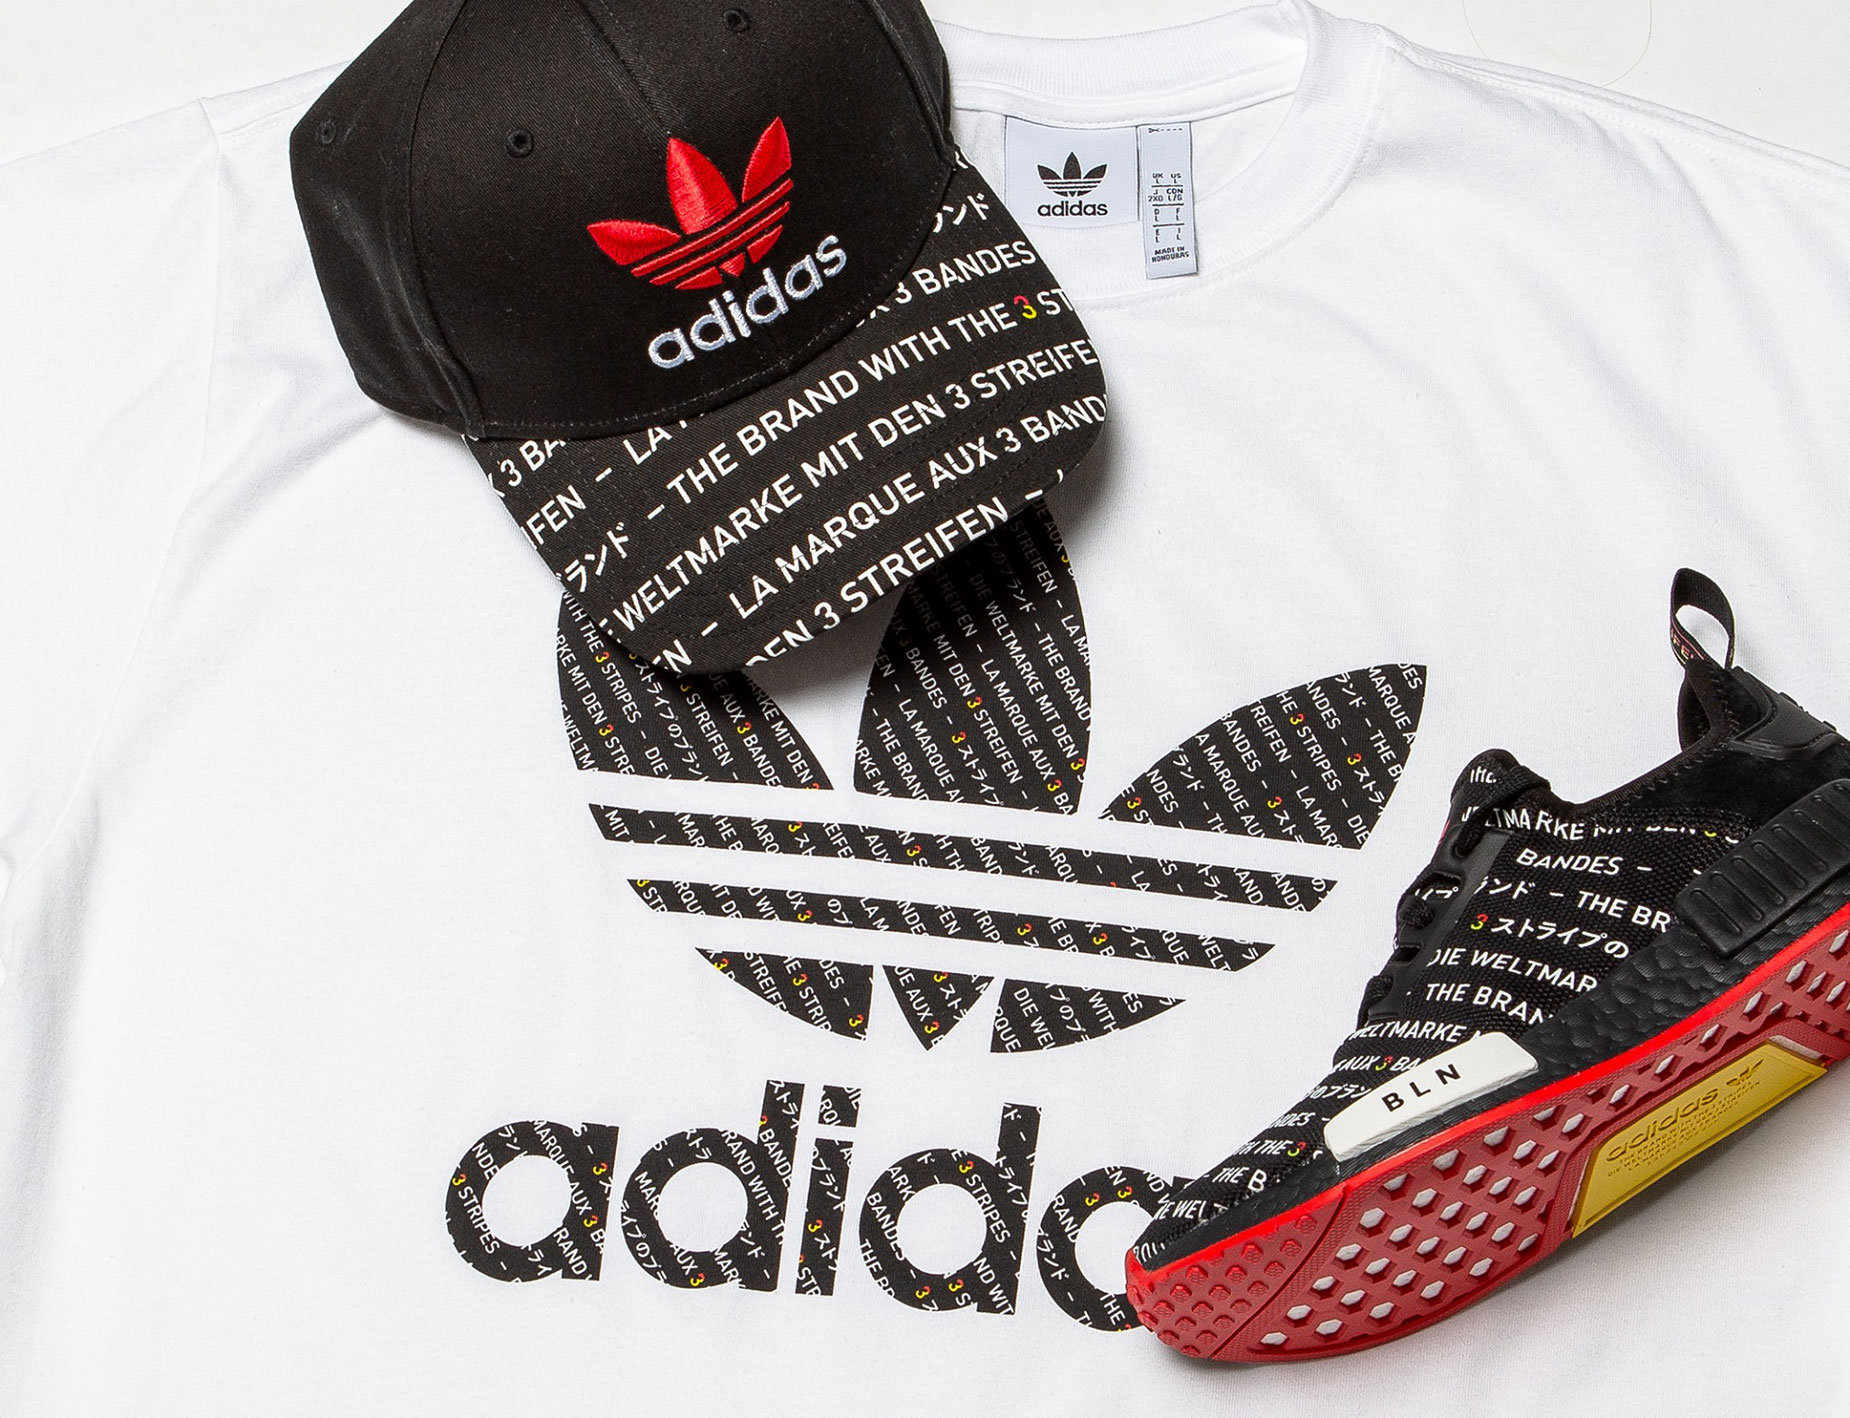 adidas-nmd-passport-hat-sneakers-shirt